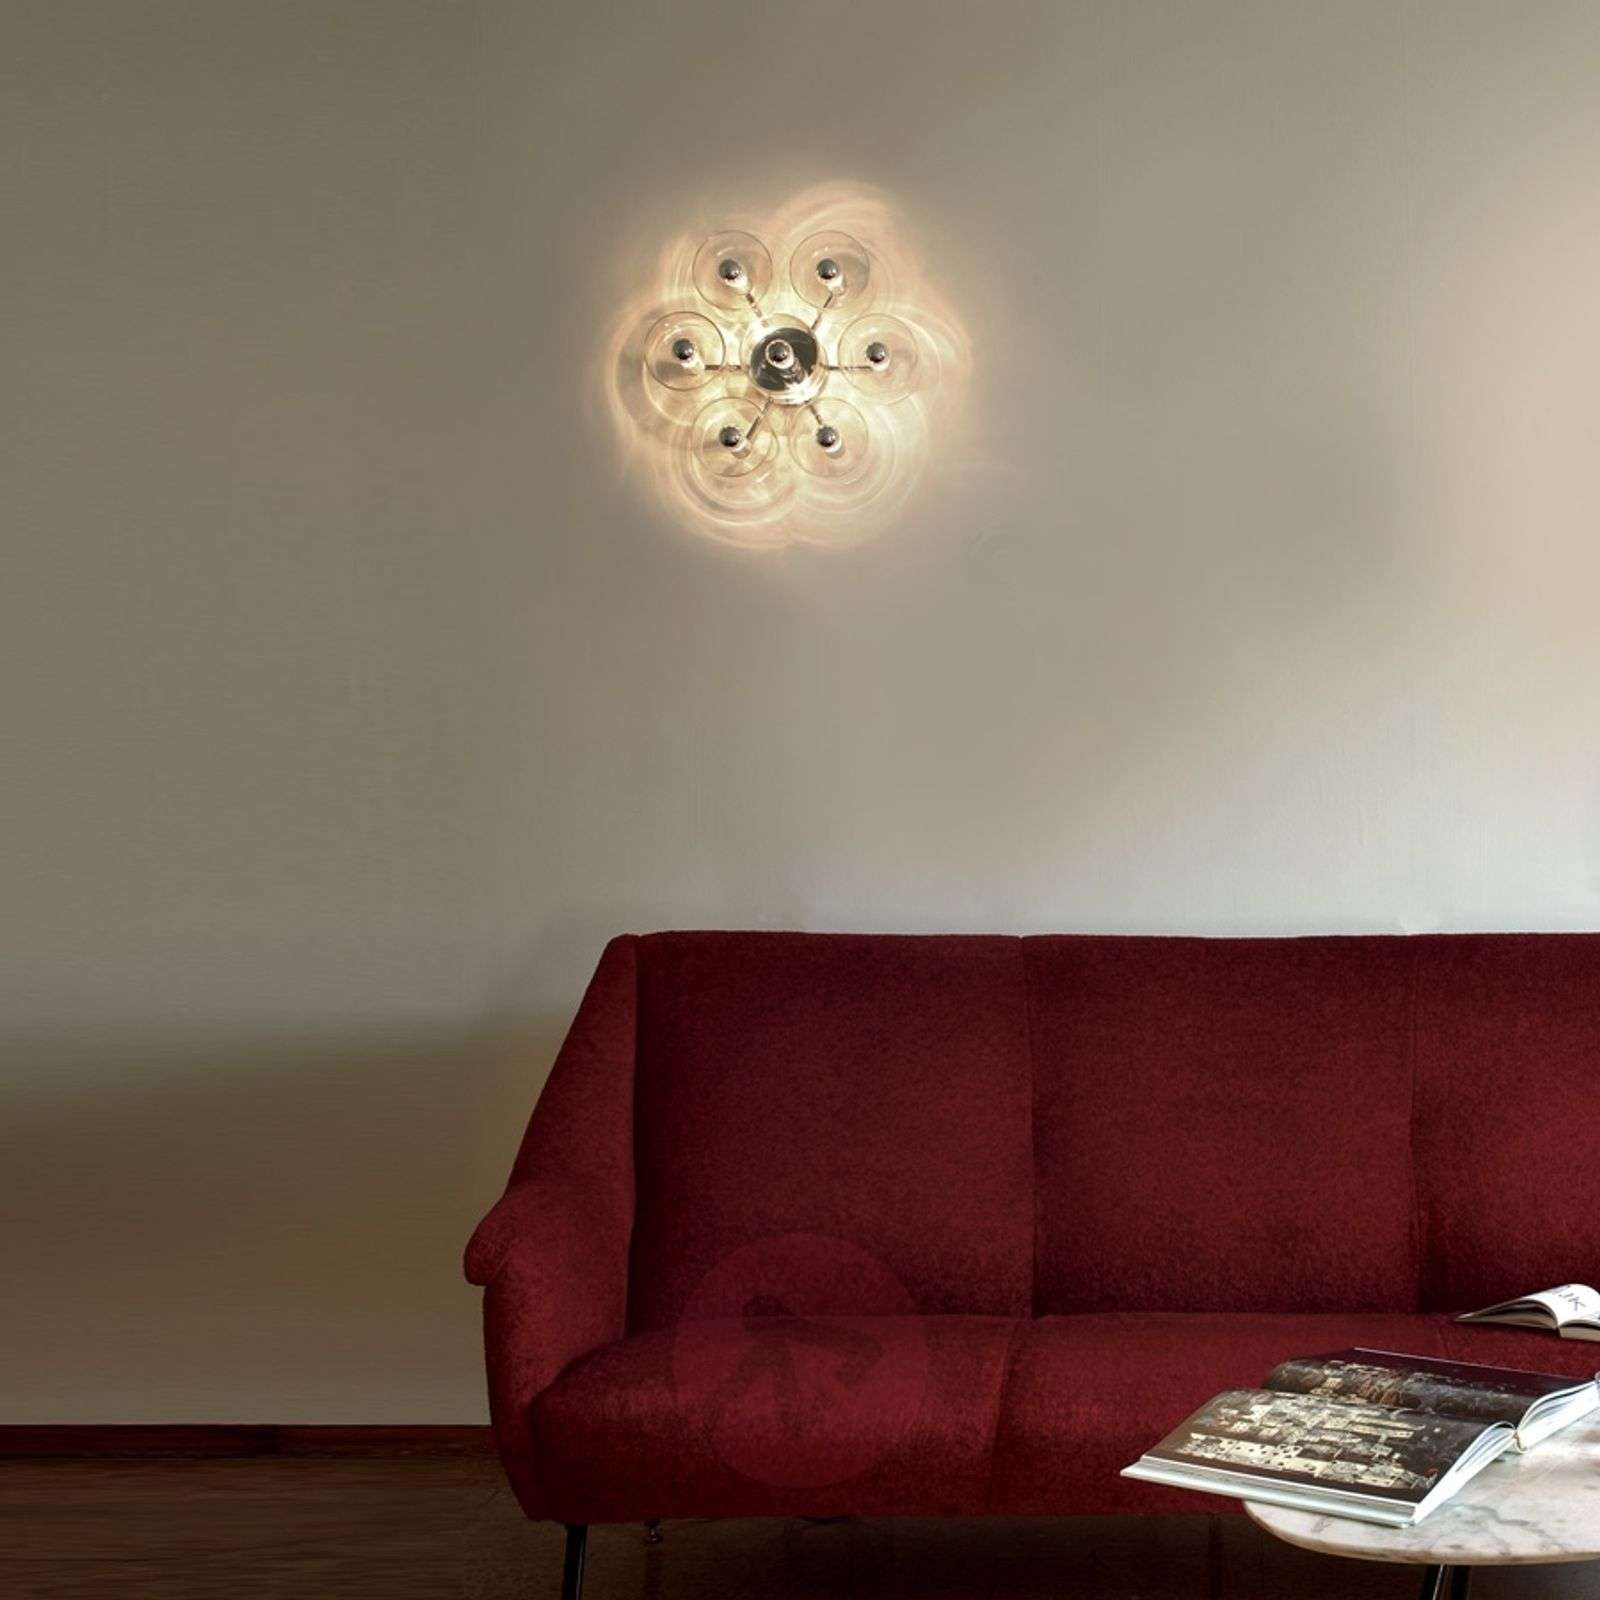 Stylised wall light Fiore-7265003-01